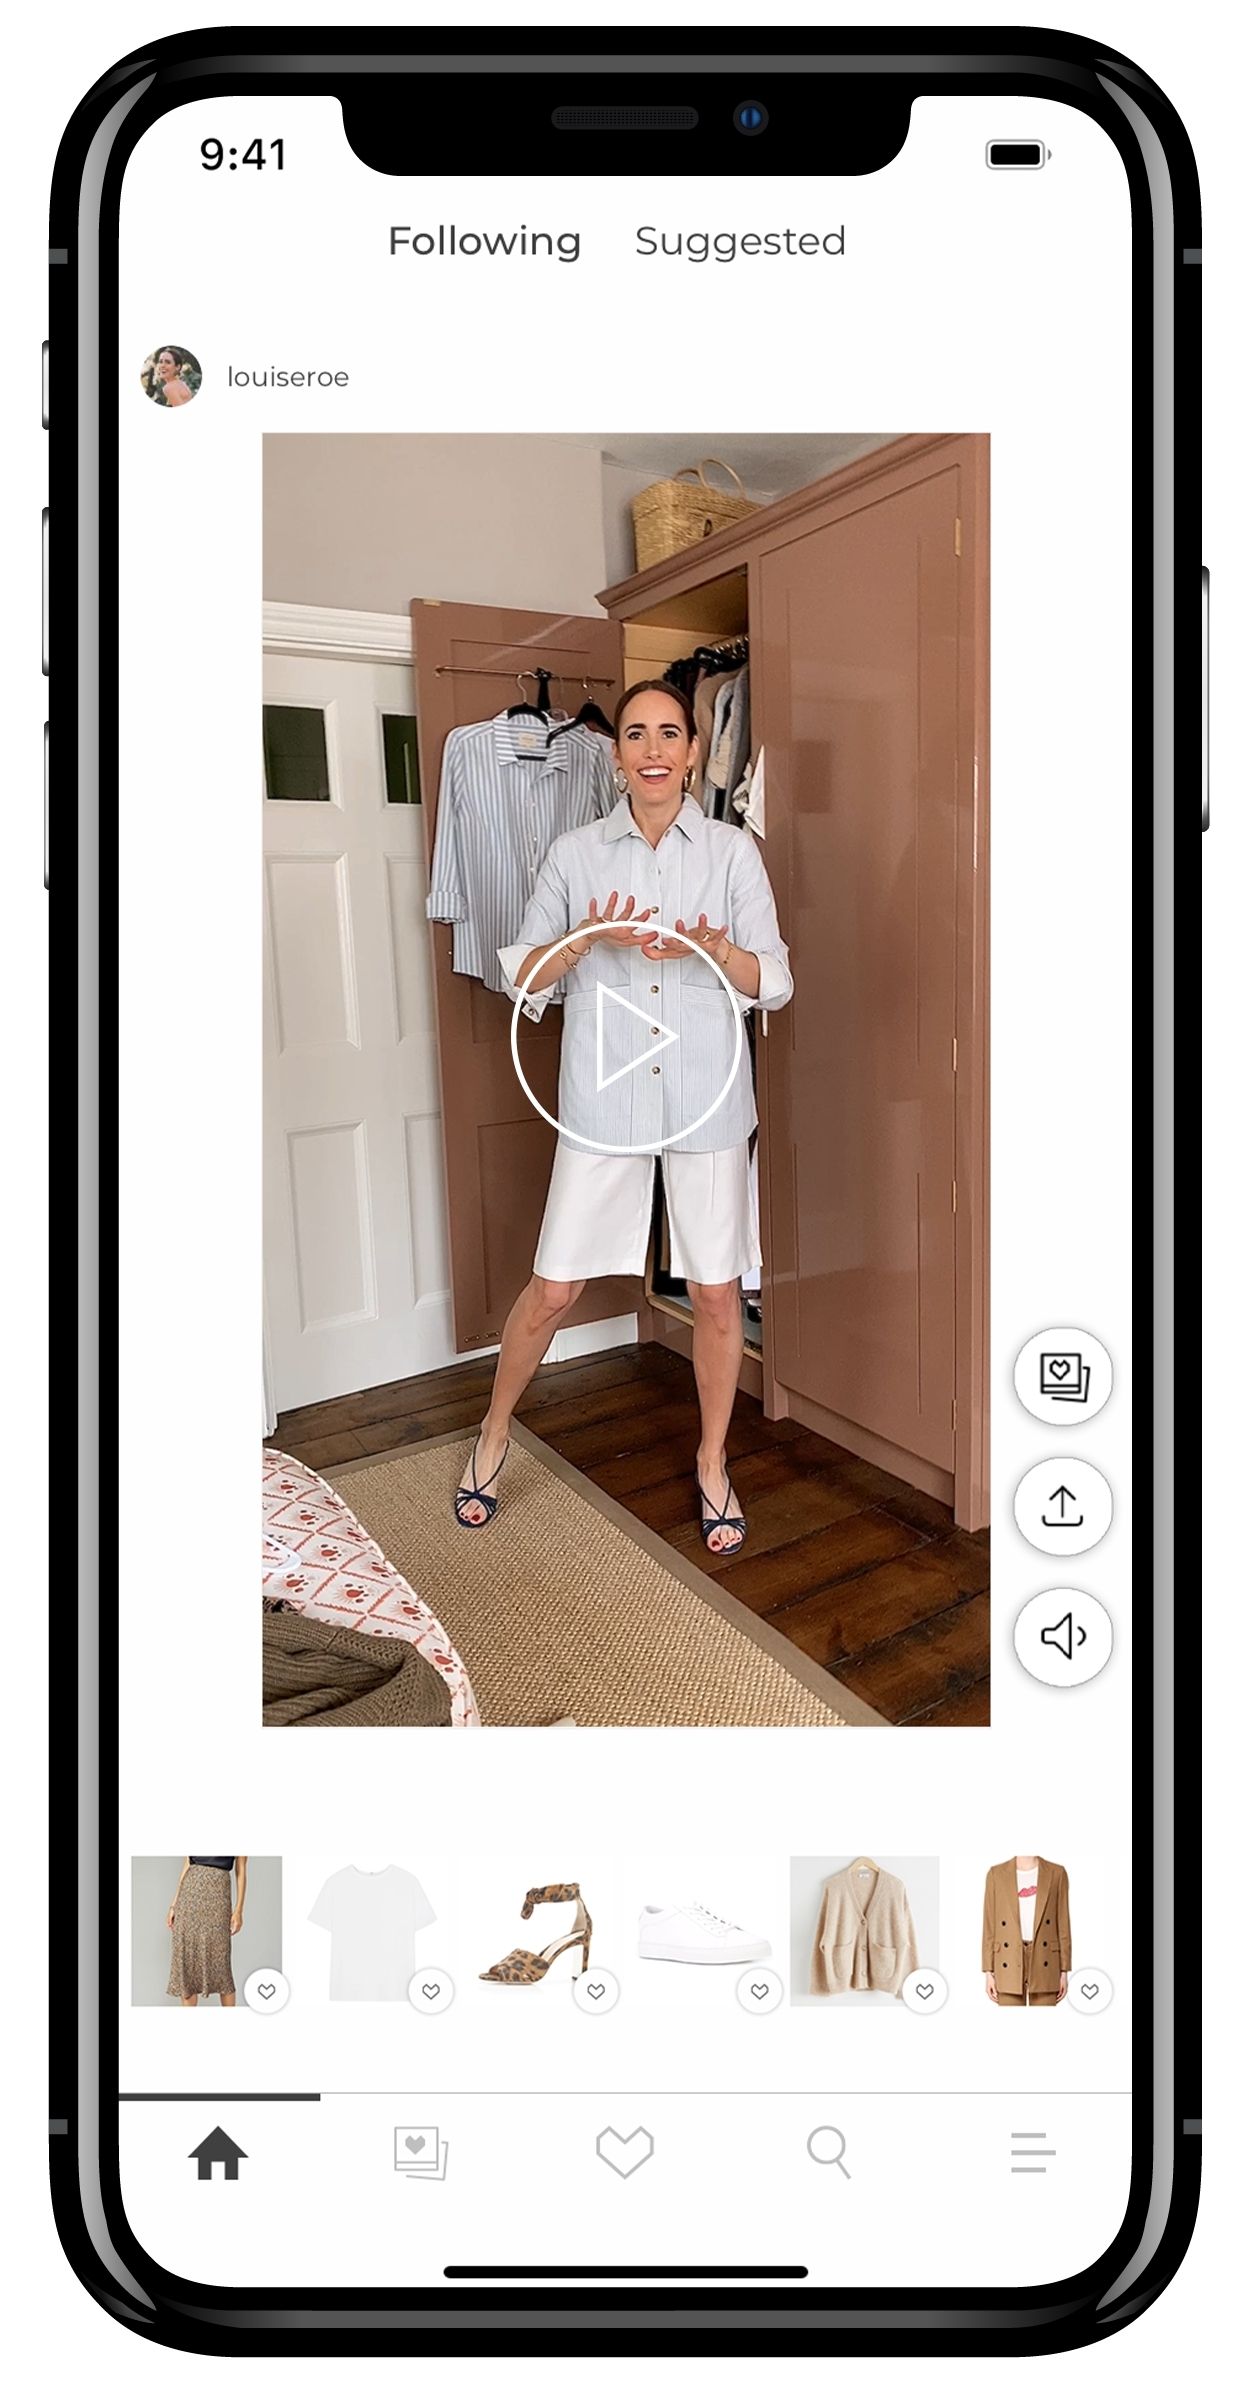 Rewardstyle S Influencer Driven Shopping App Liketoknow It Expands Into Video Shopping Business Wire